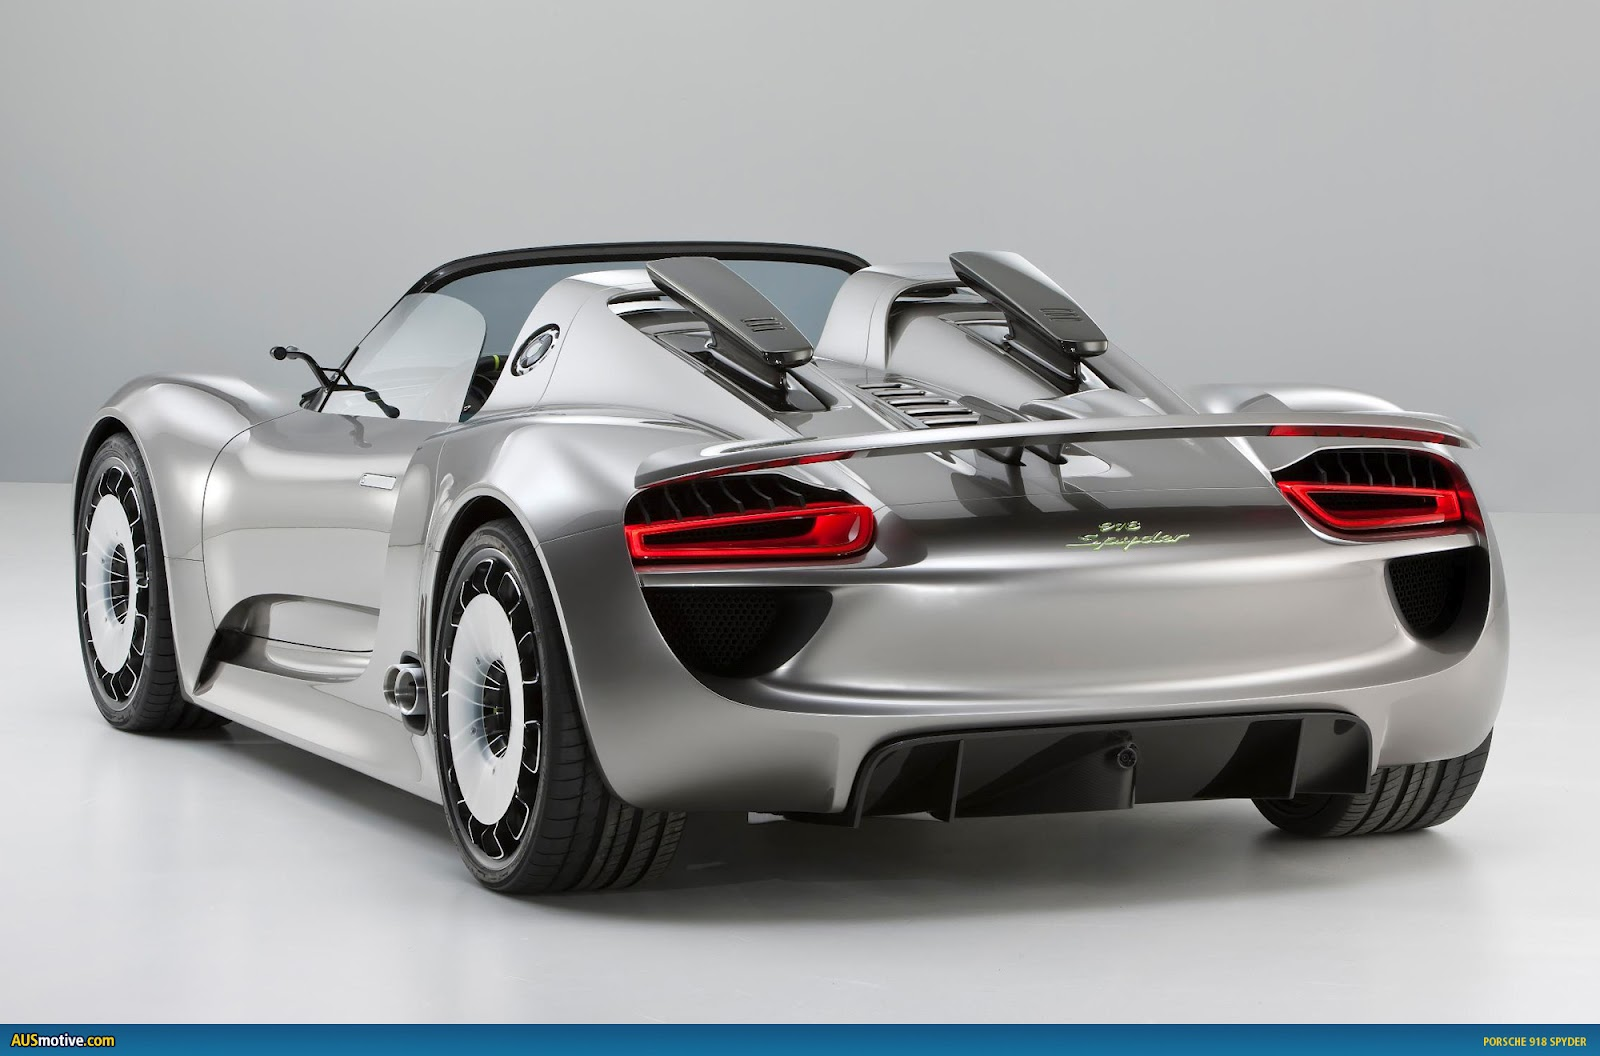 car about car which car sport car new cars wallpapers photos images snaps